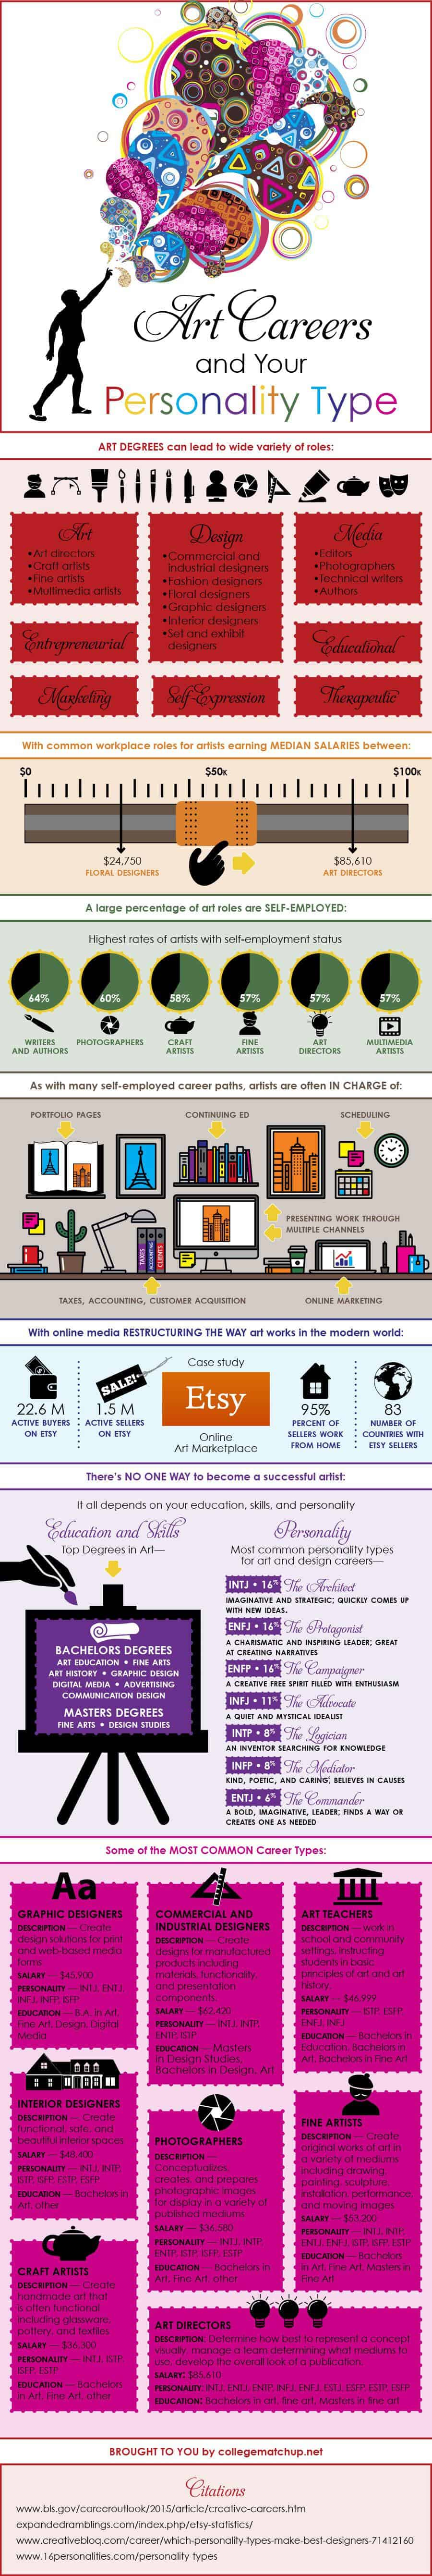 art careers by personality type infographic